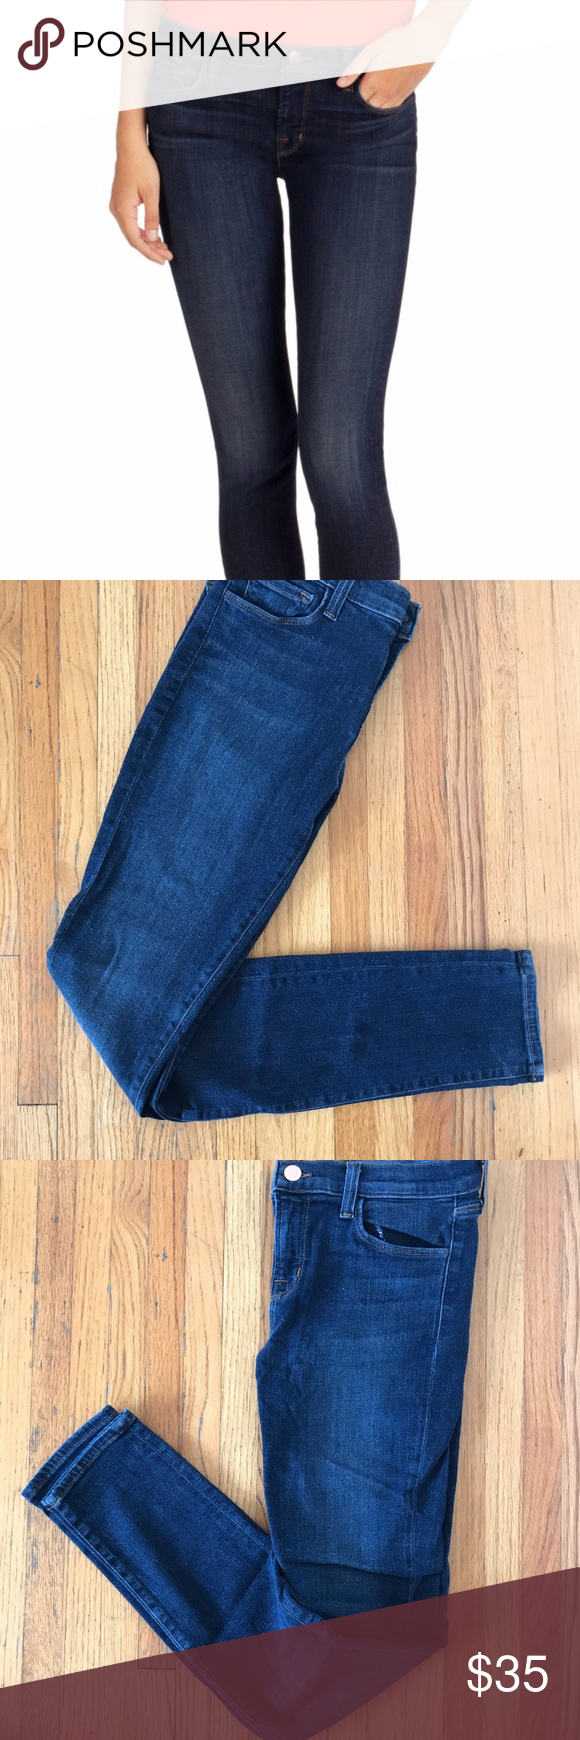 b61365a6037f J Brand 811 MID-RISE SKINNY Only worn once and in absolutely brand new  condition